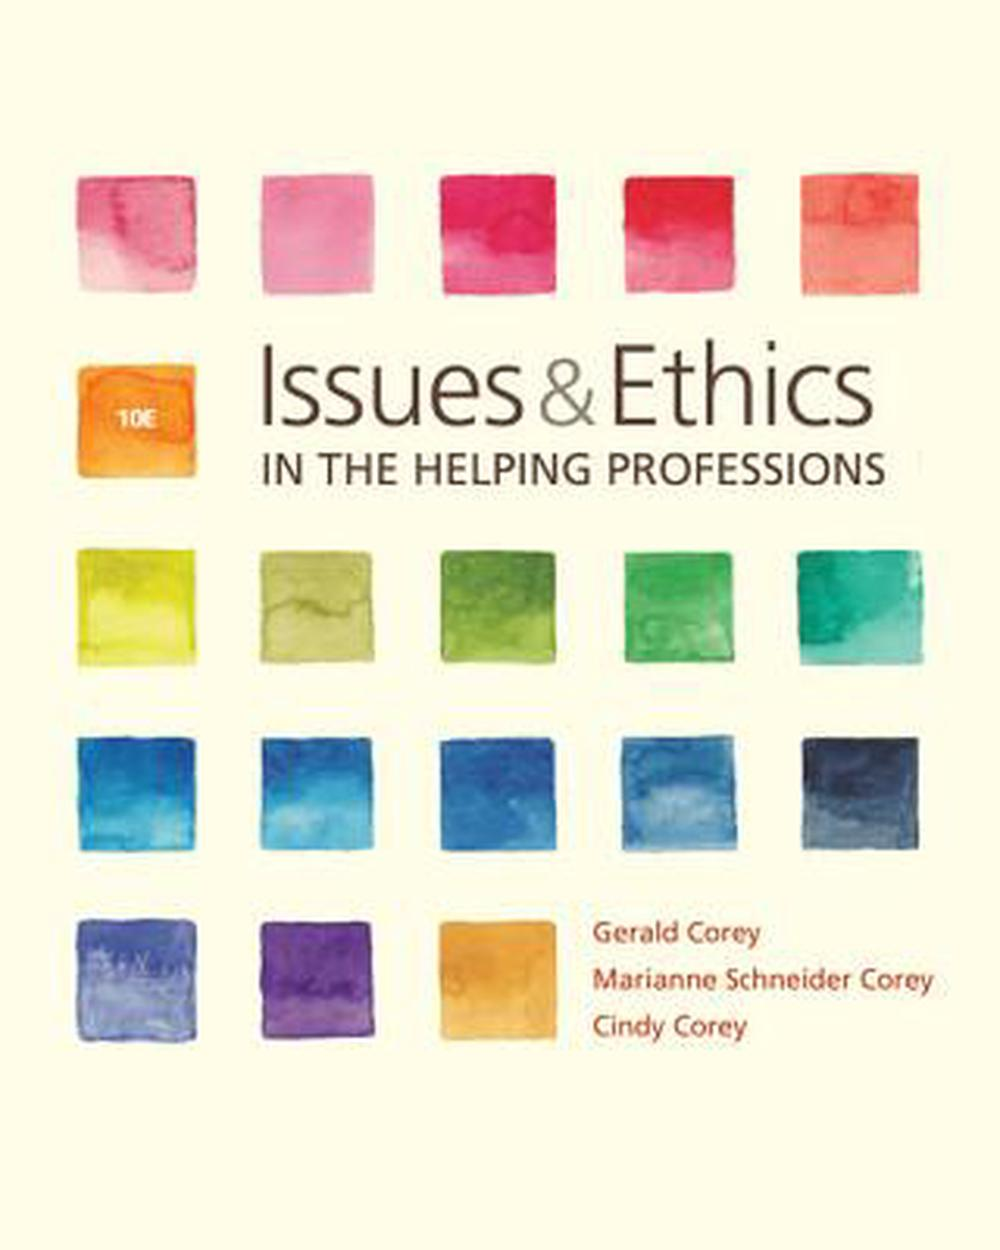 Issues and Ethics in the Helping Professions, 10th Edition